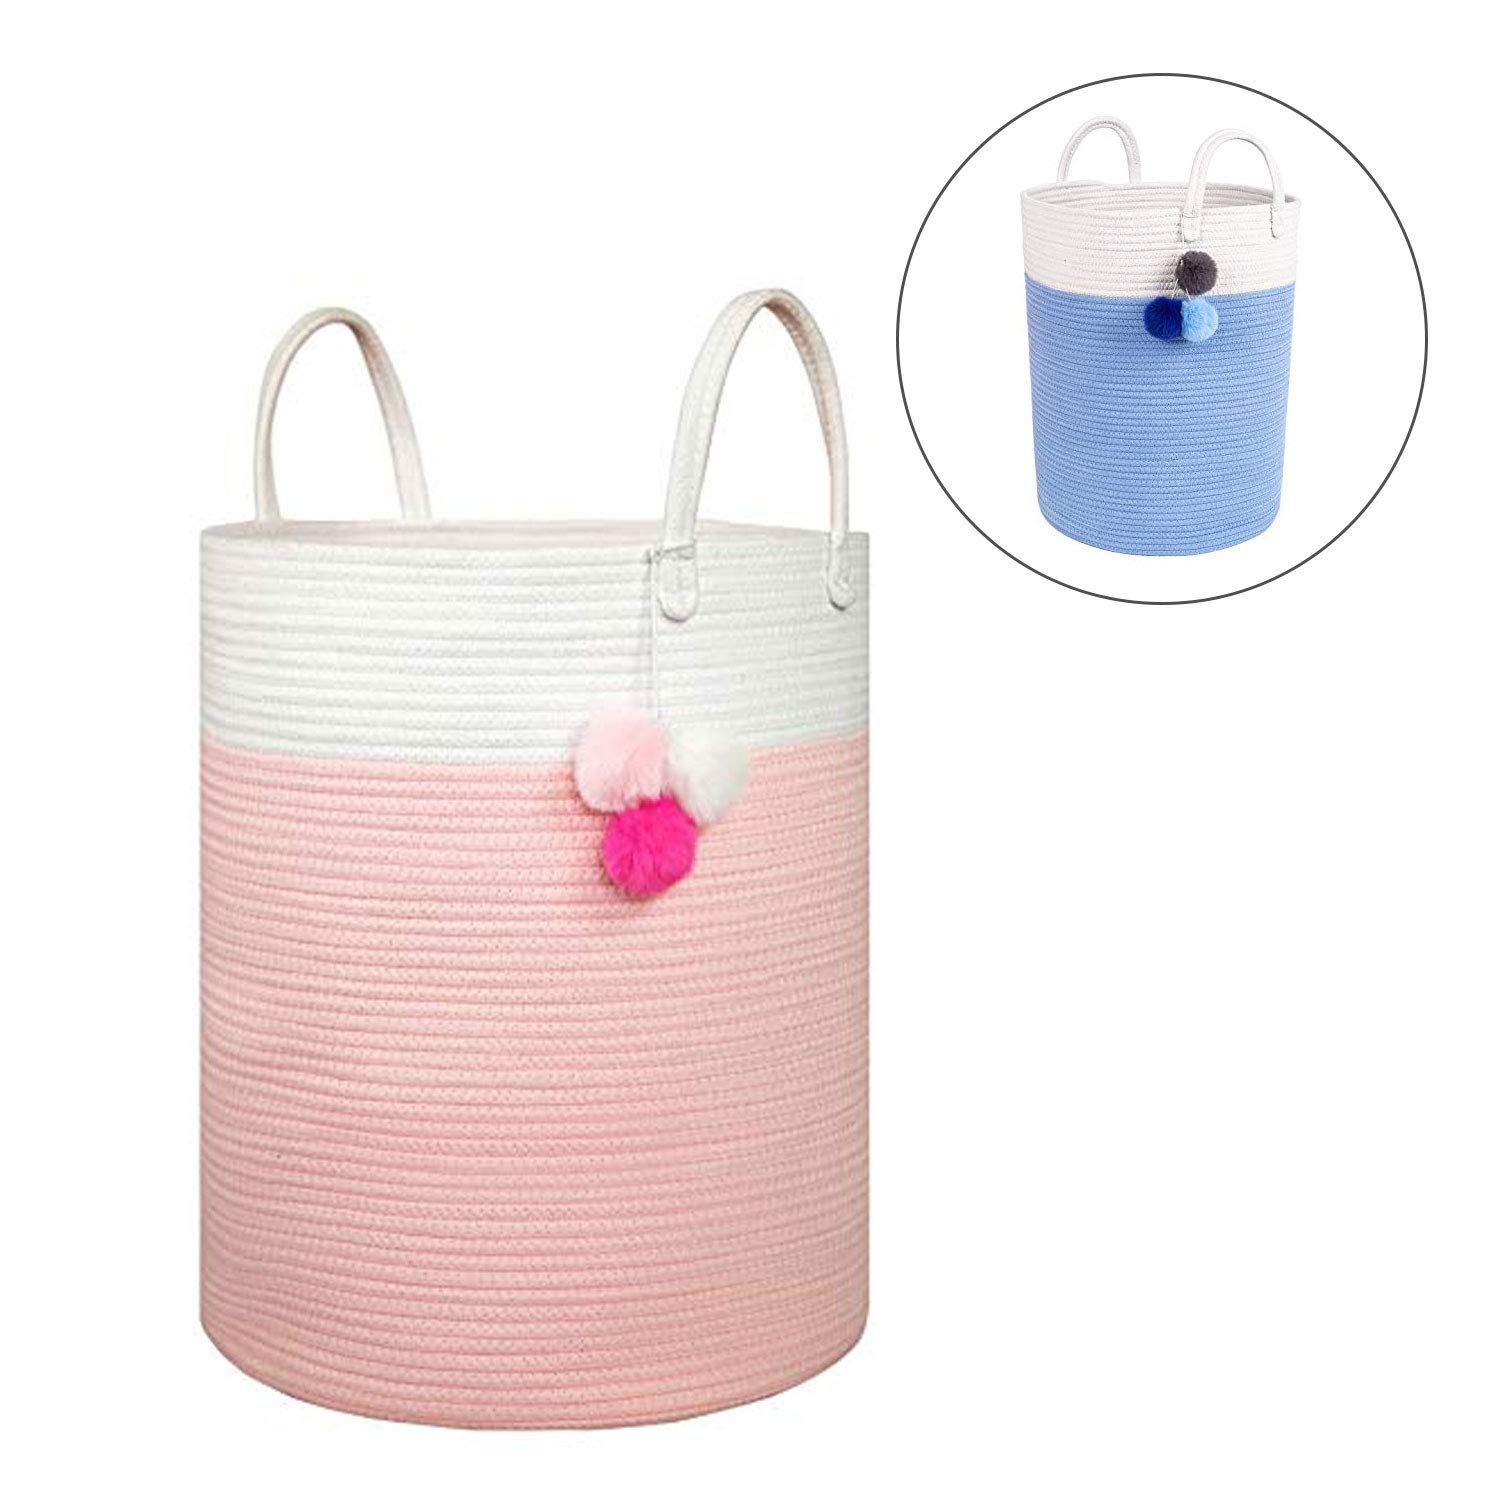 Solaya Tall Pink Cotton Rope Basket Storage 16''x 20'' - Large Natural Cotton Woven Basket w Handles – Decorative Storage Basket for Laundry, Clothes, Diapers, Toys, Hamper, Towels